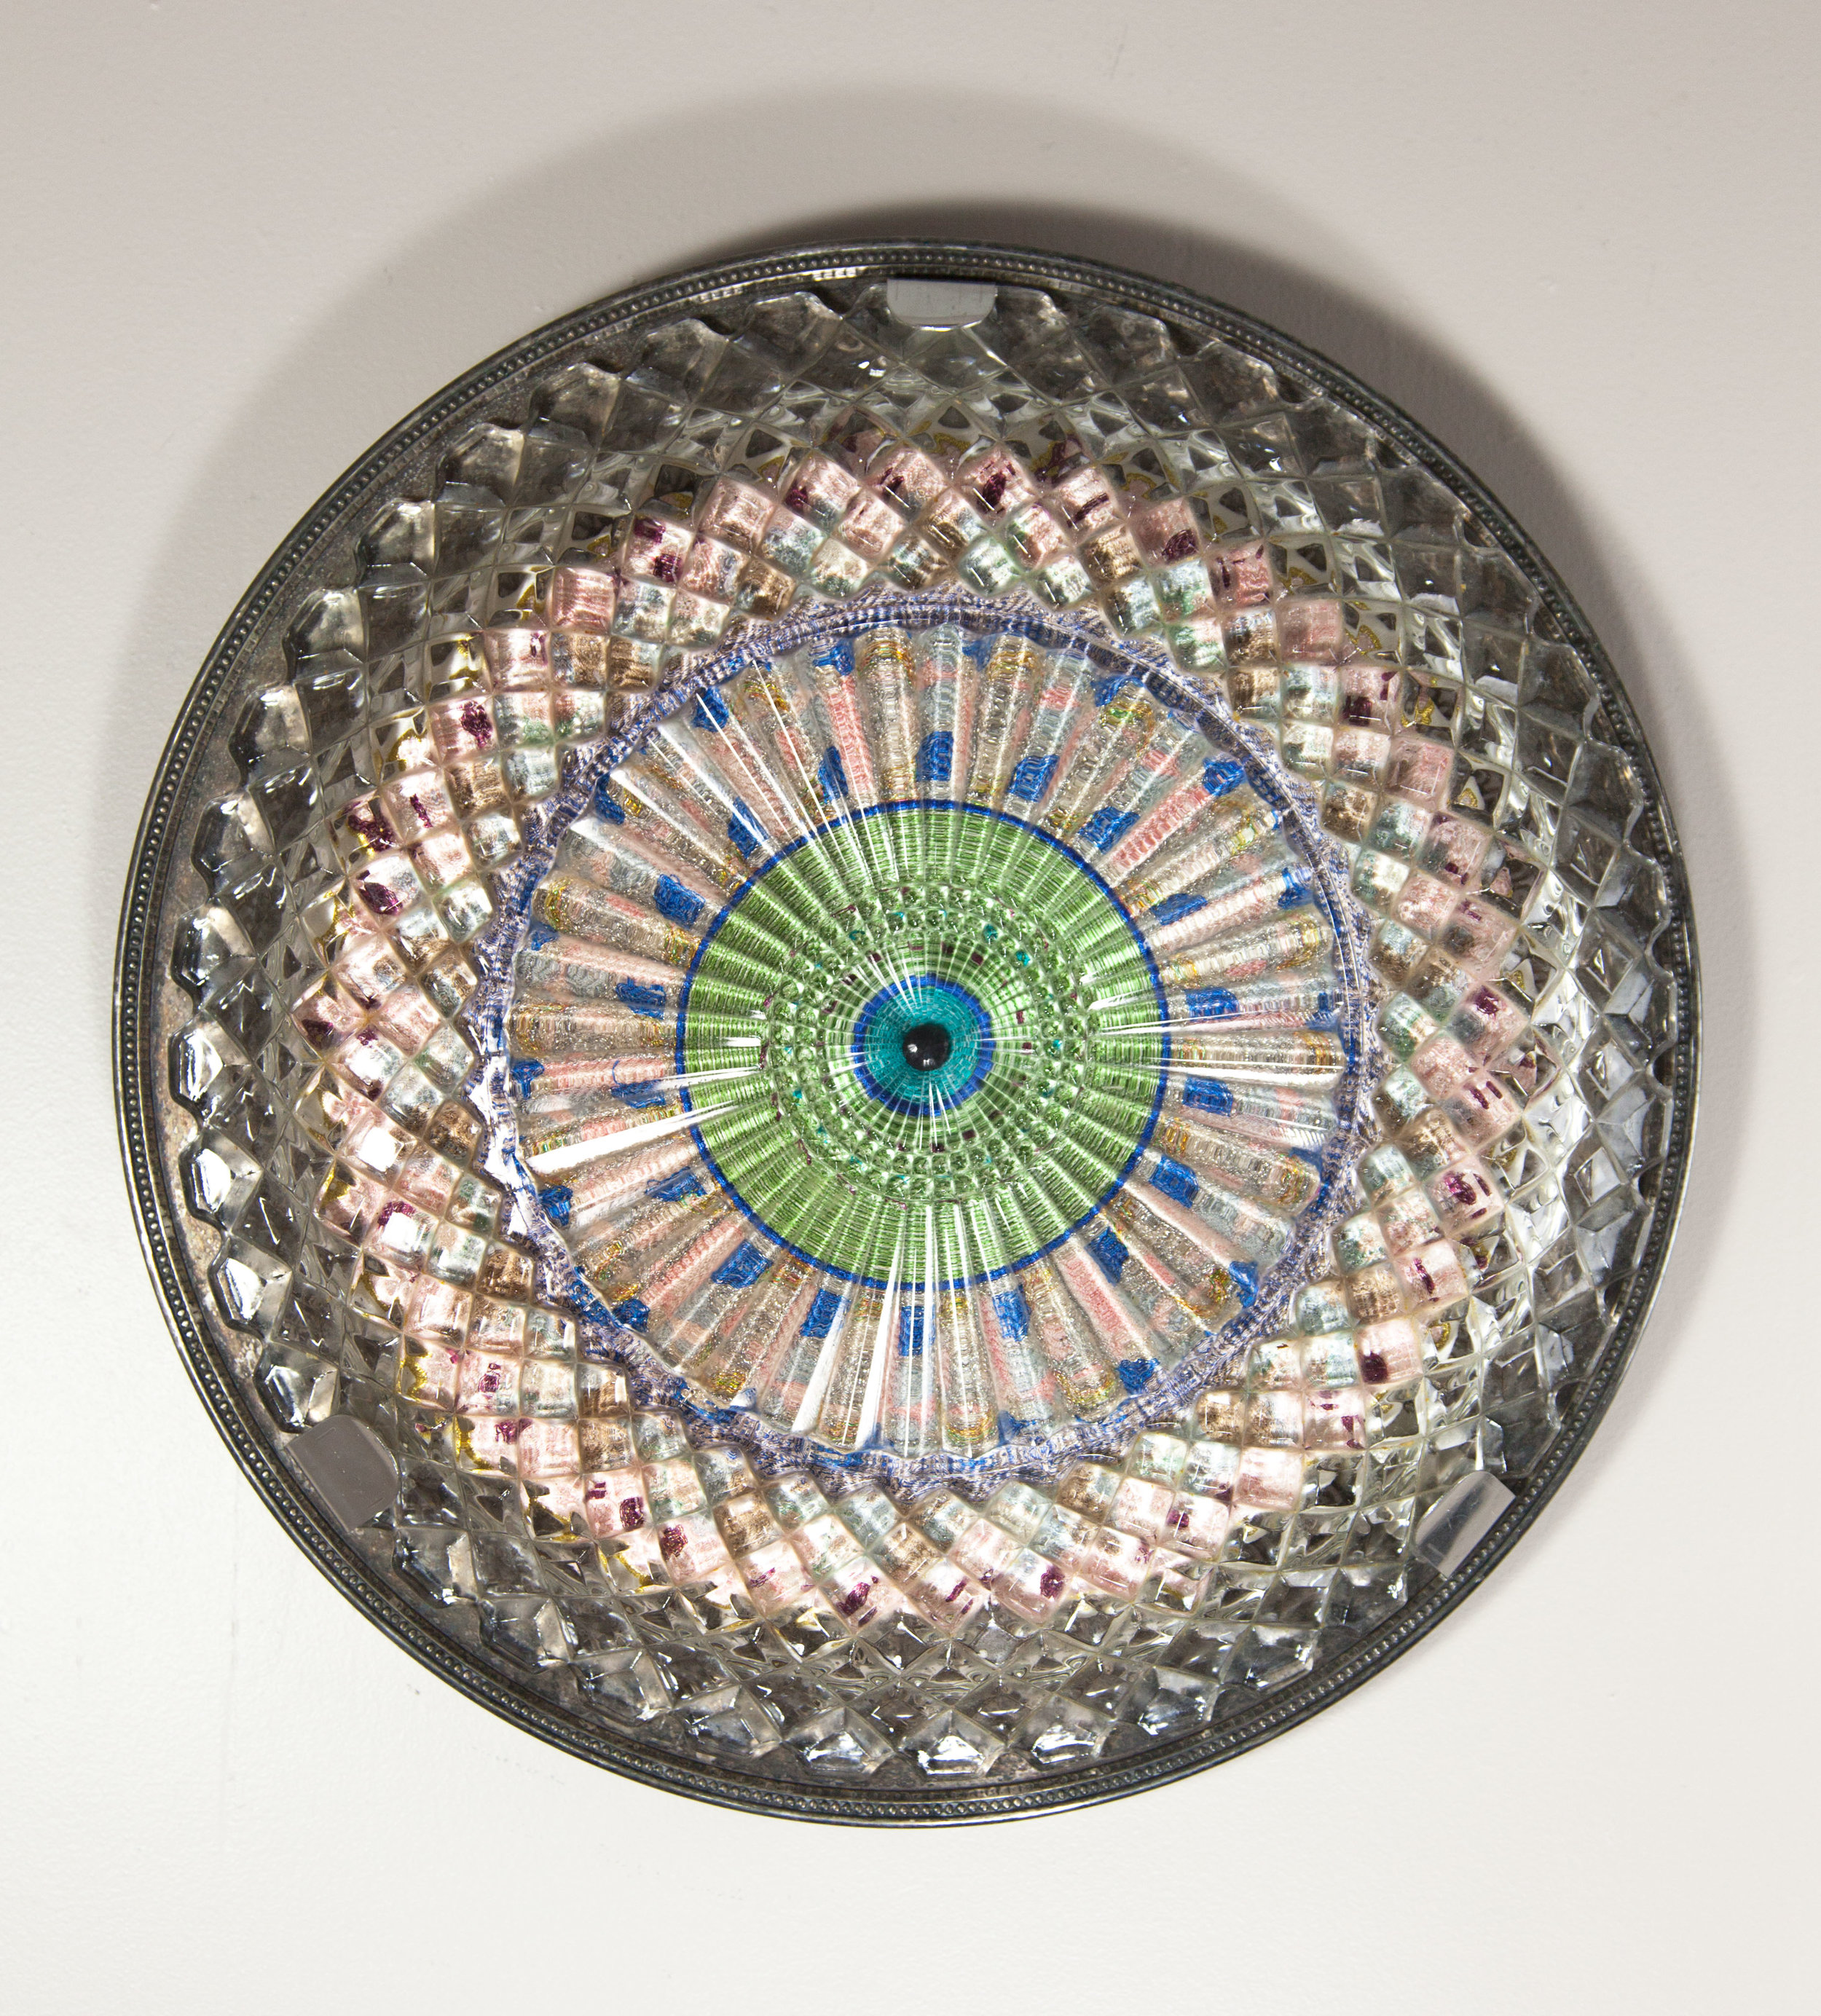 Good Looking, 2017 Domestic objects, fabric, machine embroidery, plastic button, stainless steel, monofilament, 15 1/2 x 15 1/2 x 2 1/2 inches